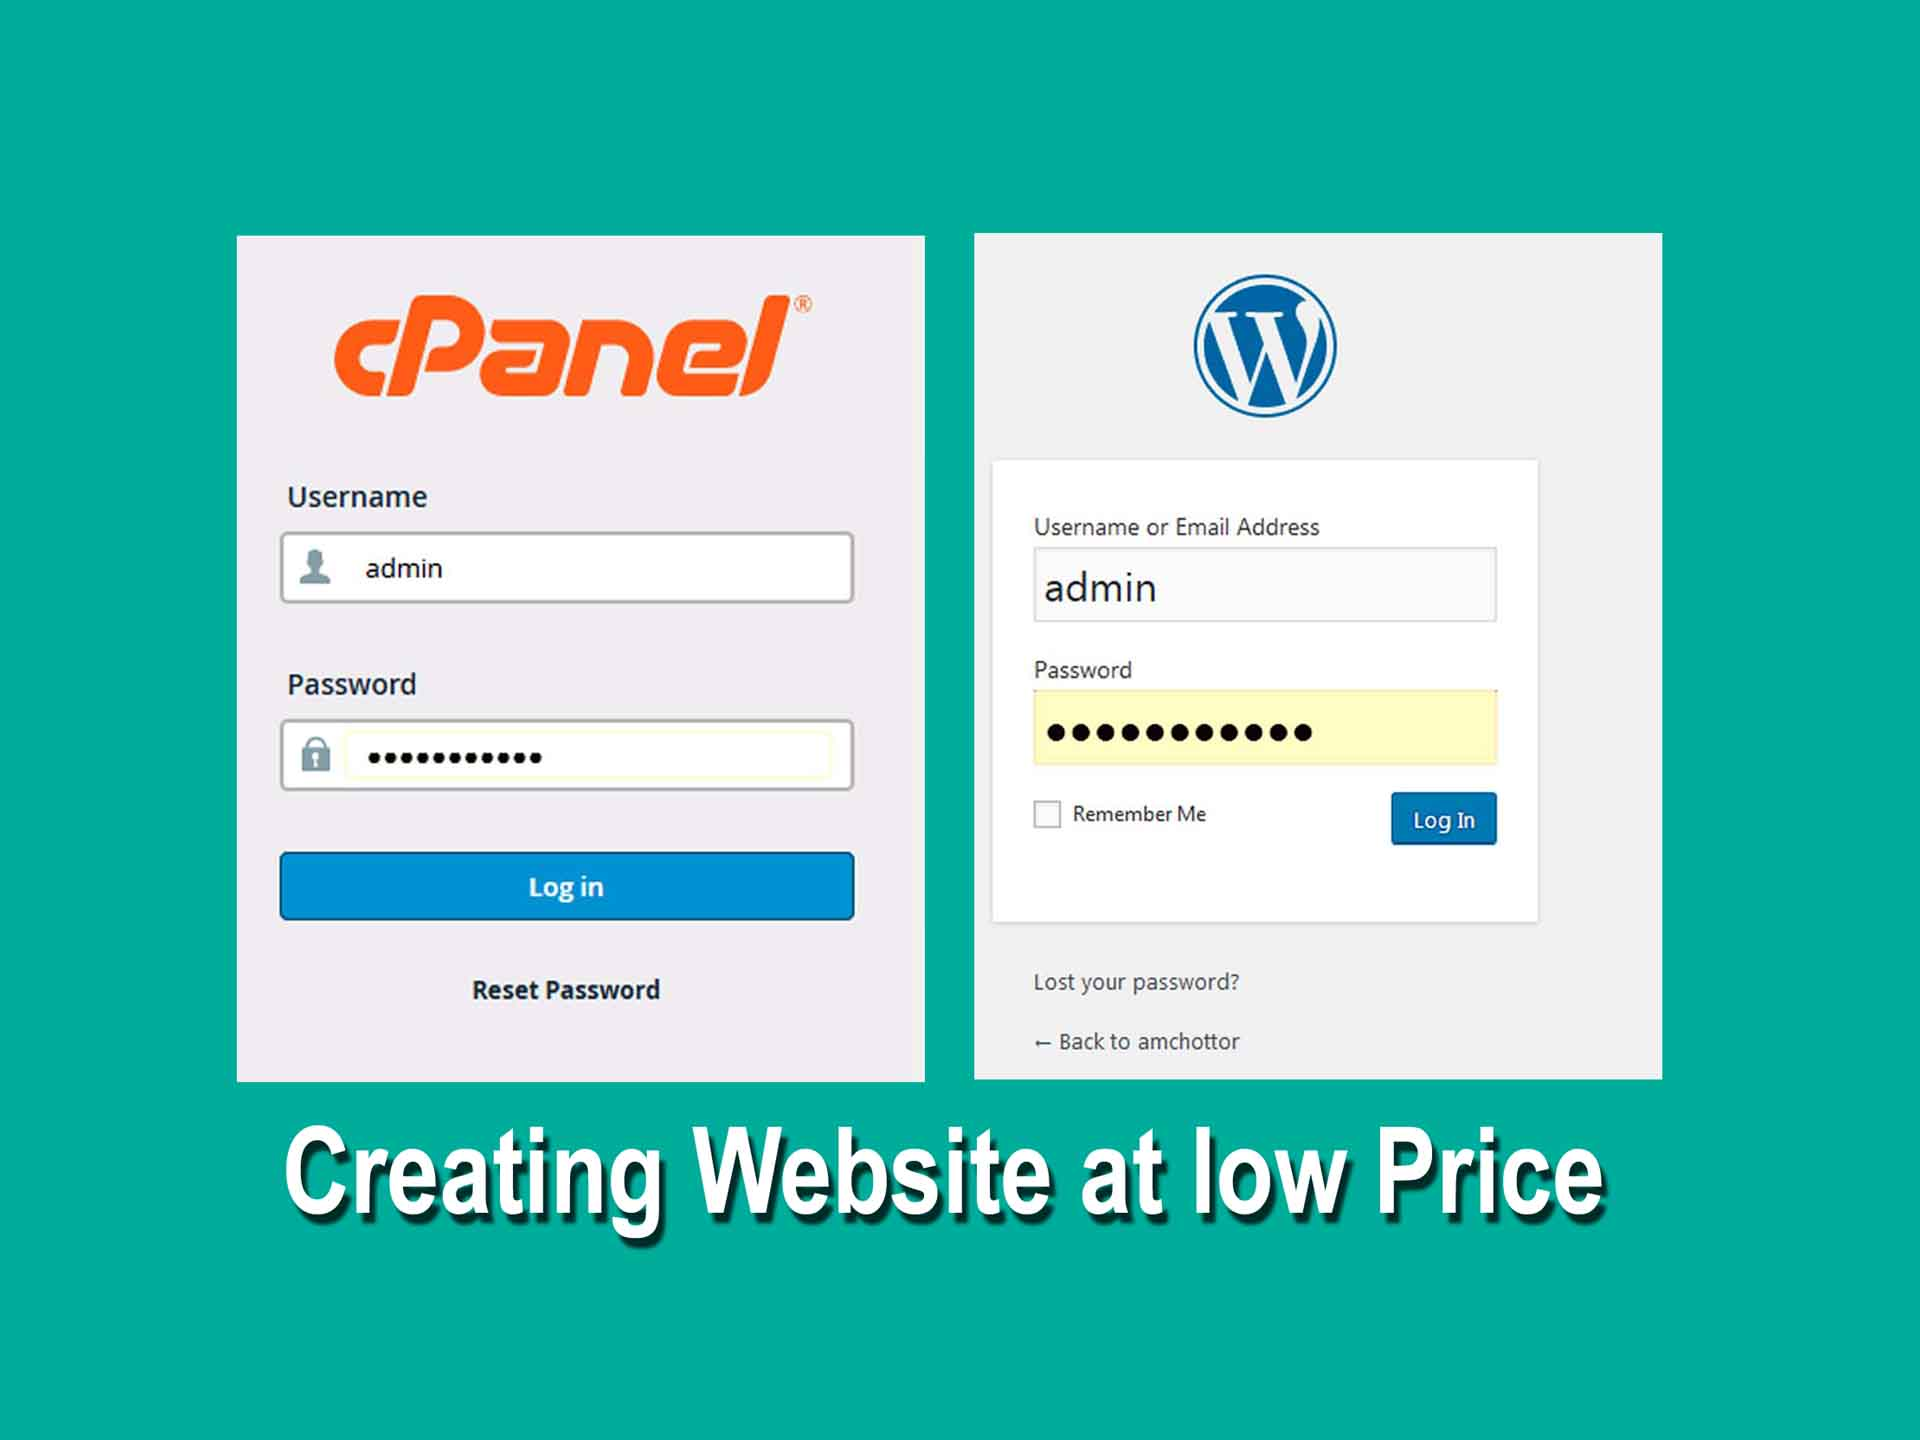 How to Creating website at low price